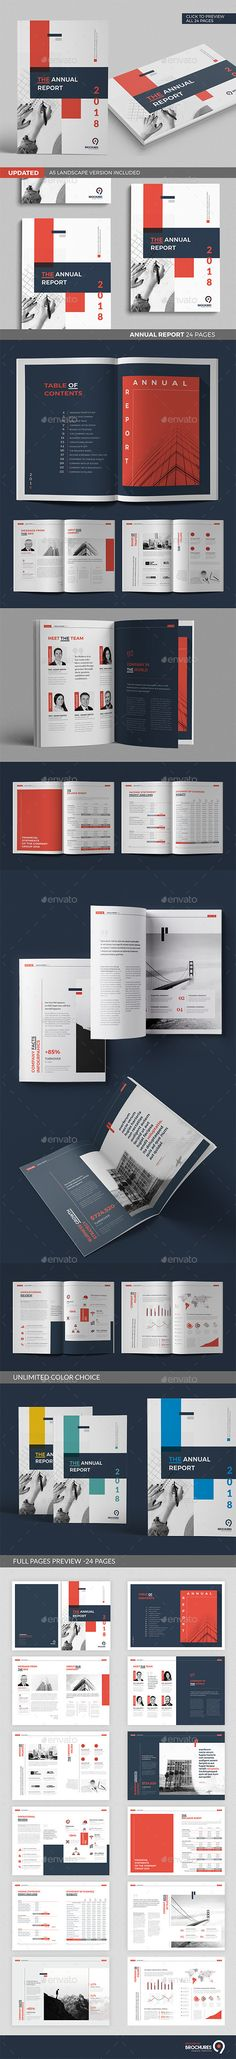 Annual Report. Print-templates Brochures Corporate. To help discover this a4, a5, agency, annual report, brief, brochure, brochure template, business, clean, company, company profile, corporate, creative, design, digital marketing, e-commerce, easy, indesign, infographic, landscape, marketing, minimal, modern, portfolio, portrait, proposal, and solution.